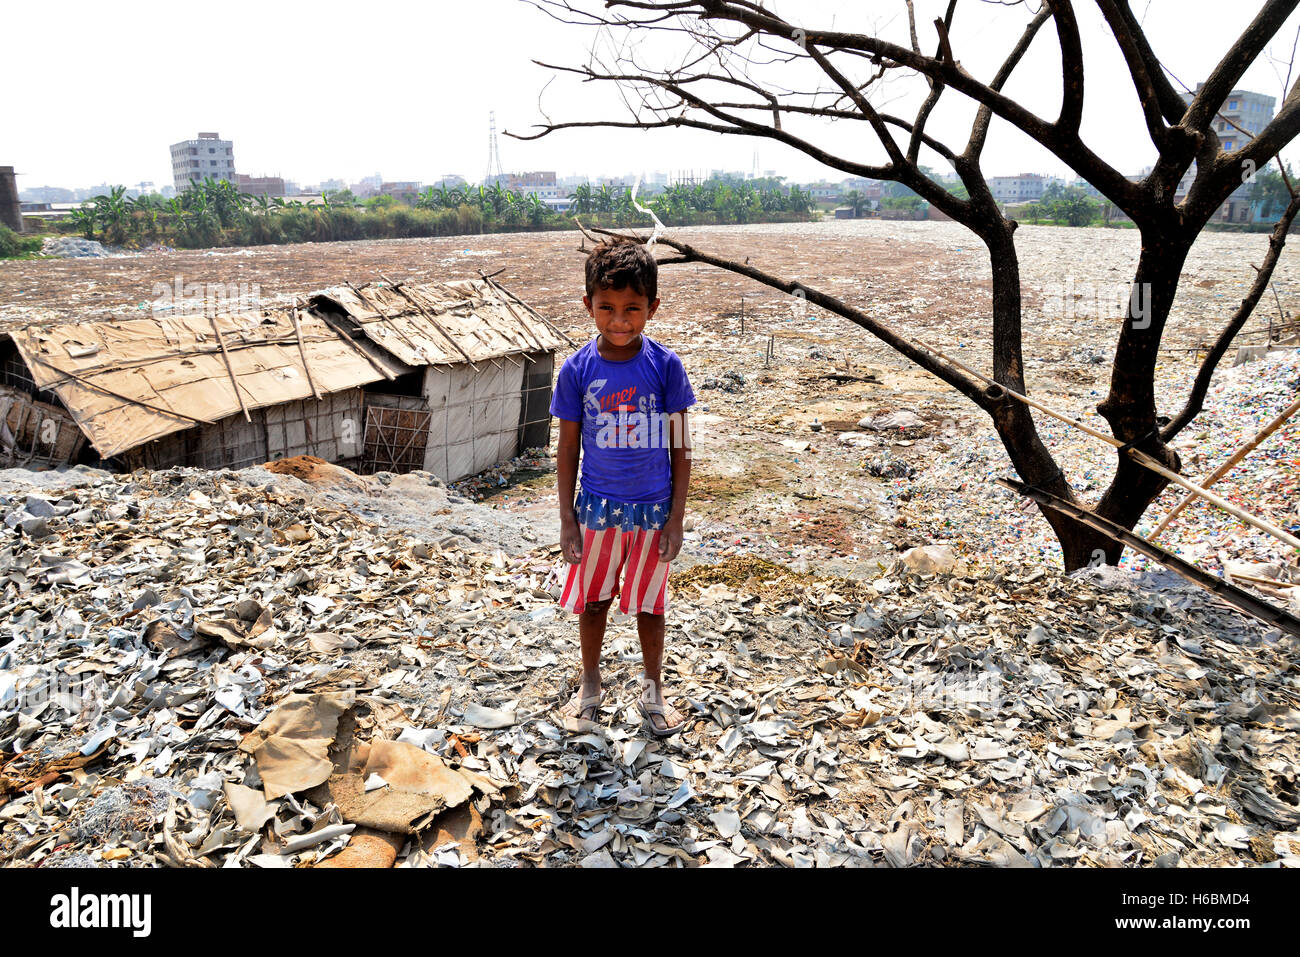 A Bangladeshi street children stand on the leather factories wastes dumped area at Hazaribagh Tannery area in Dhaka - Stock Image